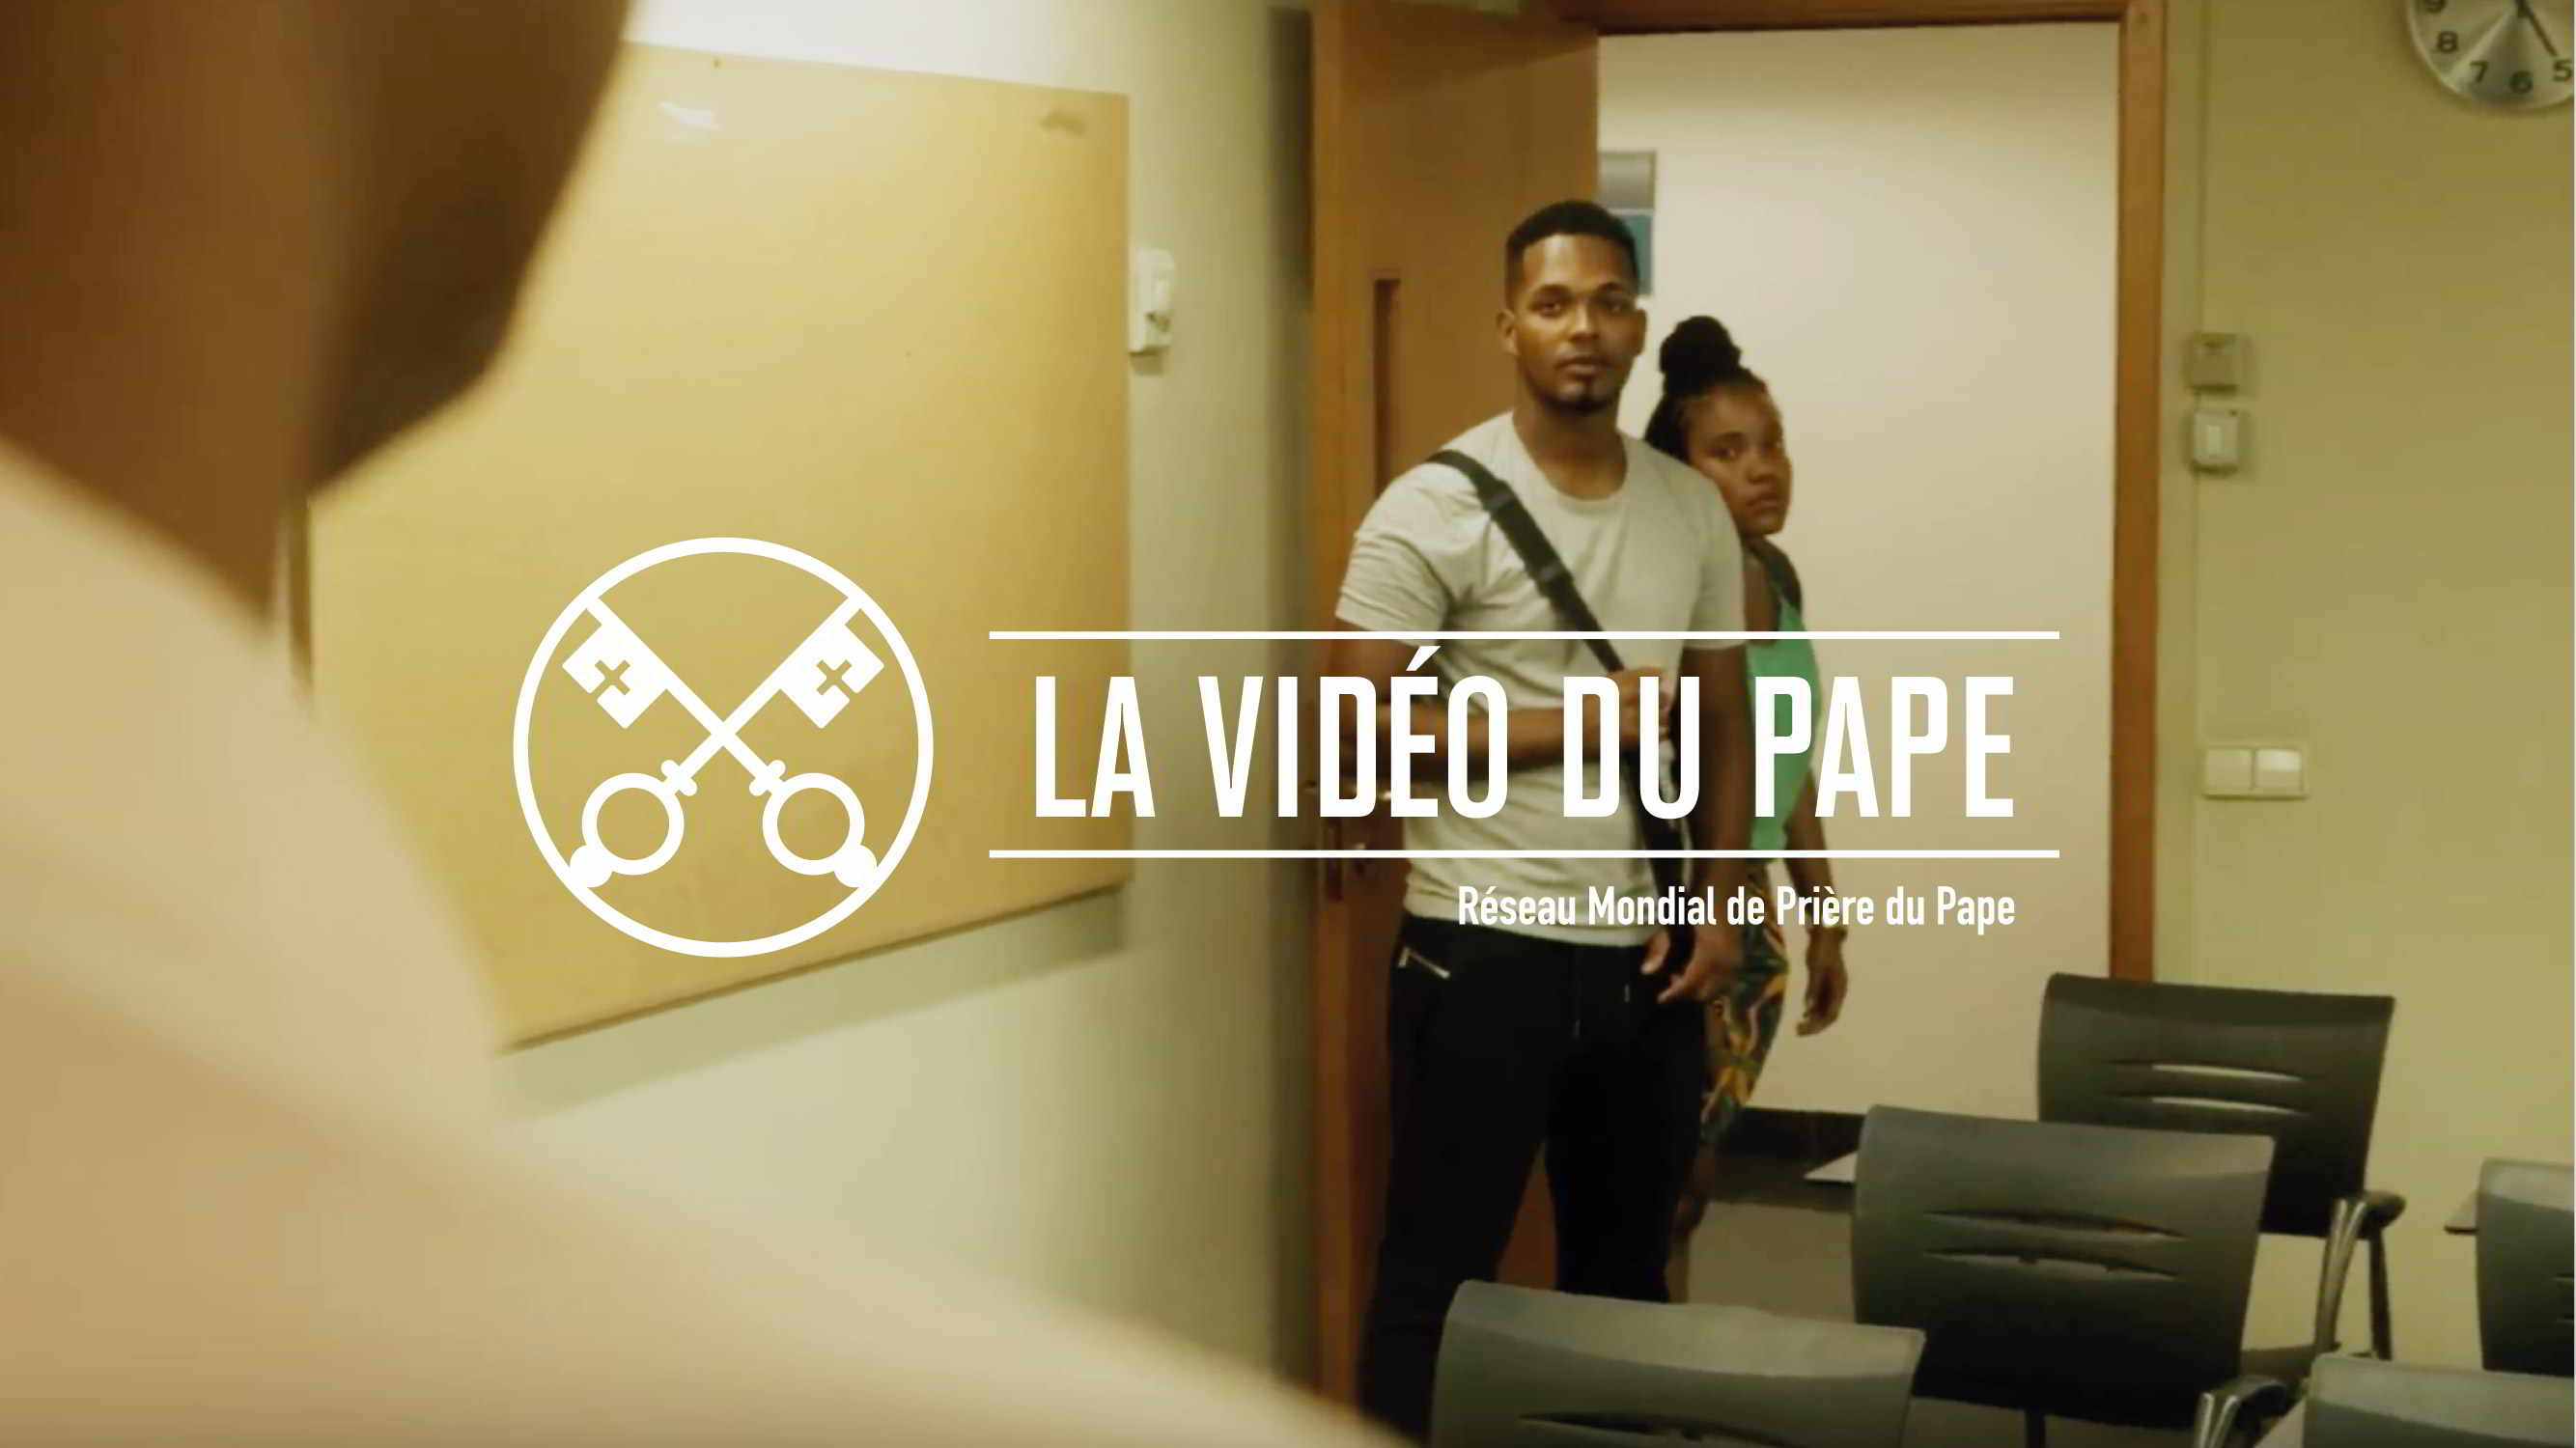 Official Image - The Pope Video 9 2018 - Young People in Africa - 4 French